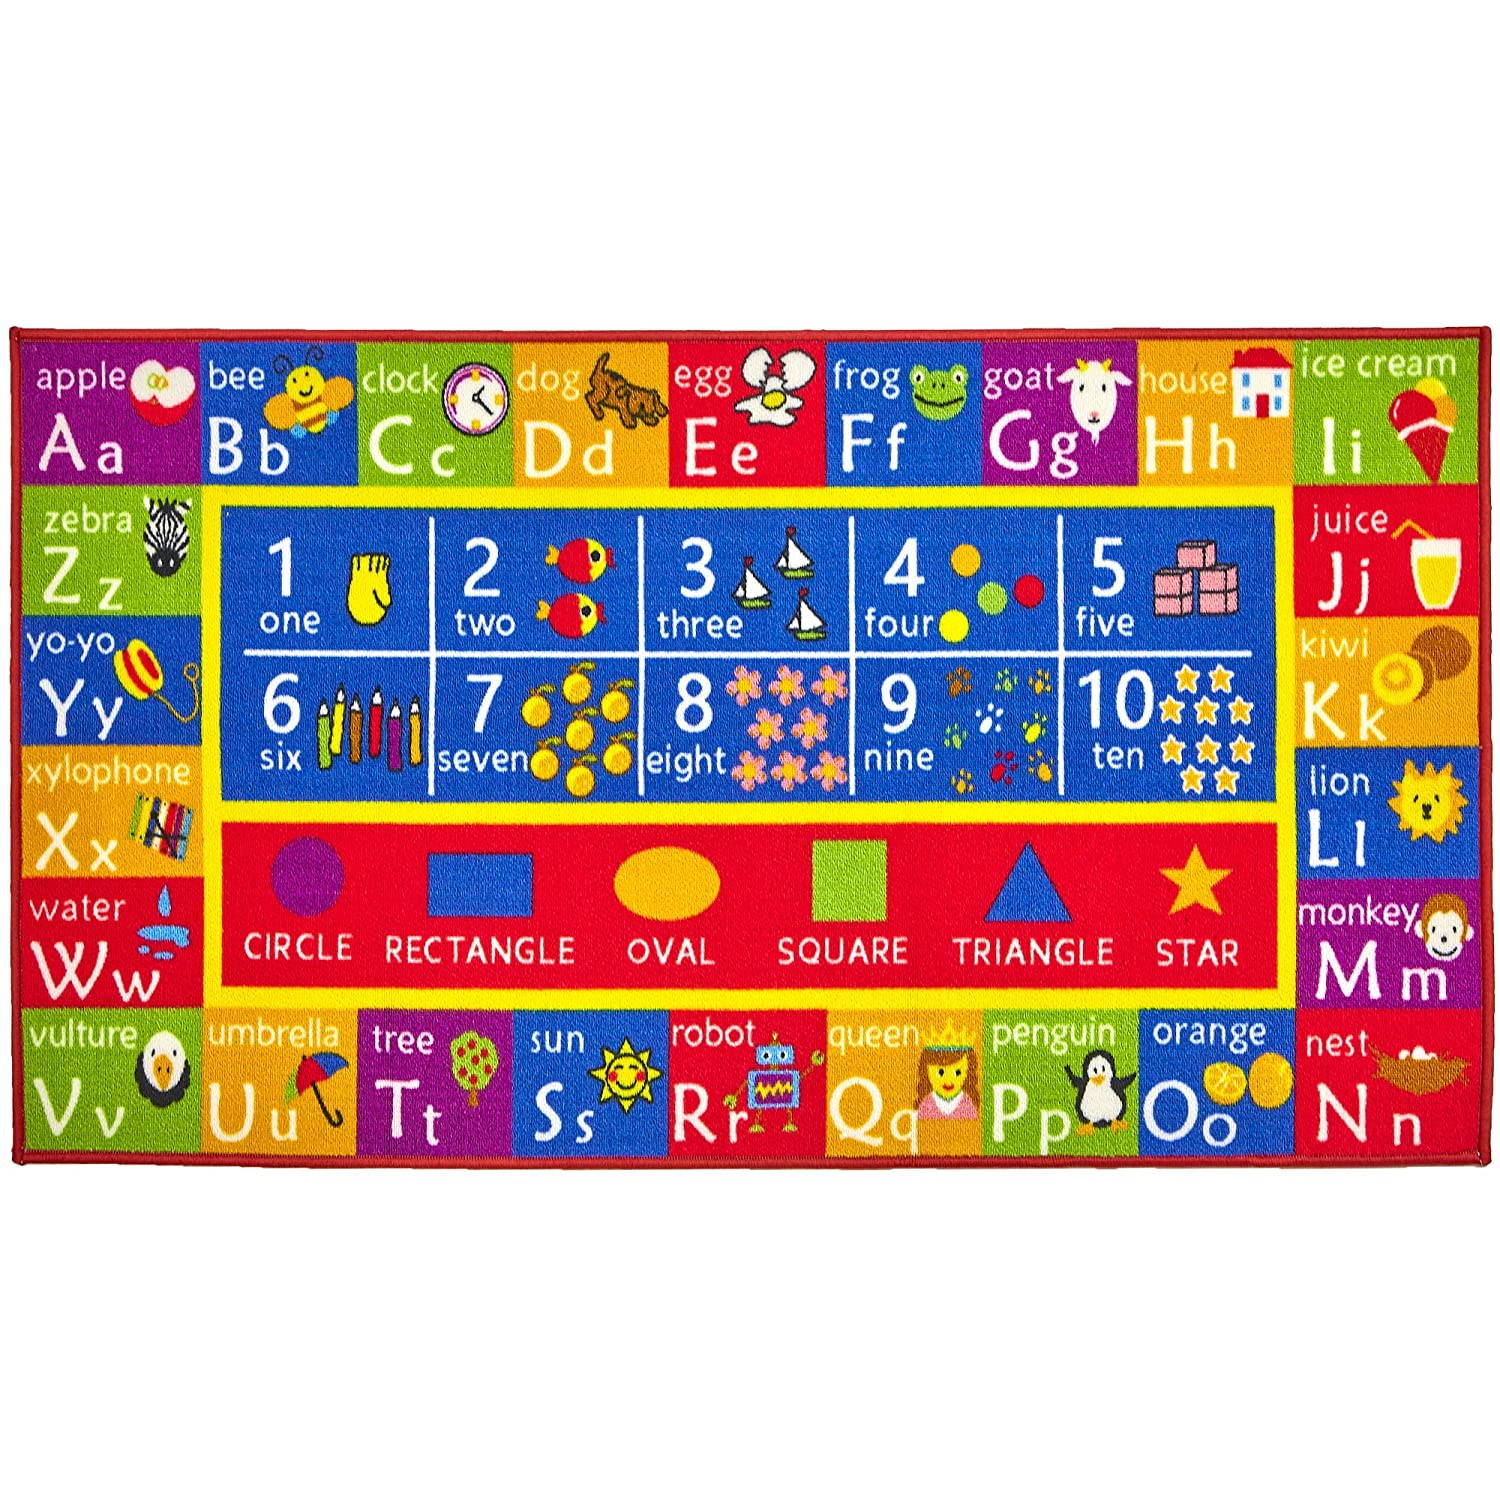 Alphabet and Numbers Play Rug – Educational and Fun Kid's Mat - Bedroom, Nursery and Classroom Carpet Runner – Shapes and Colorful Shape Designs - by Amy & Delle